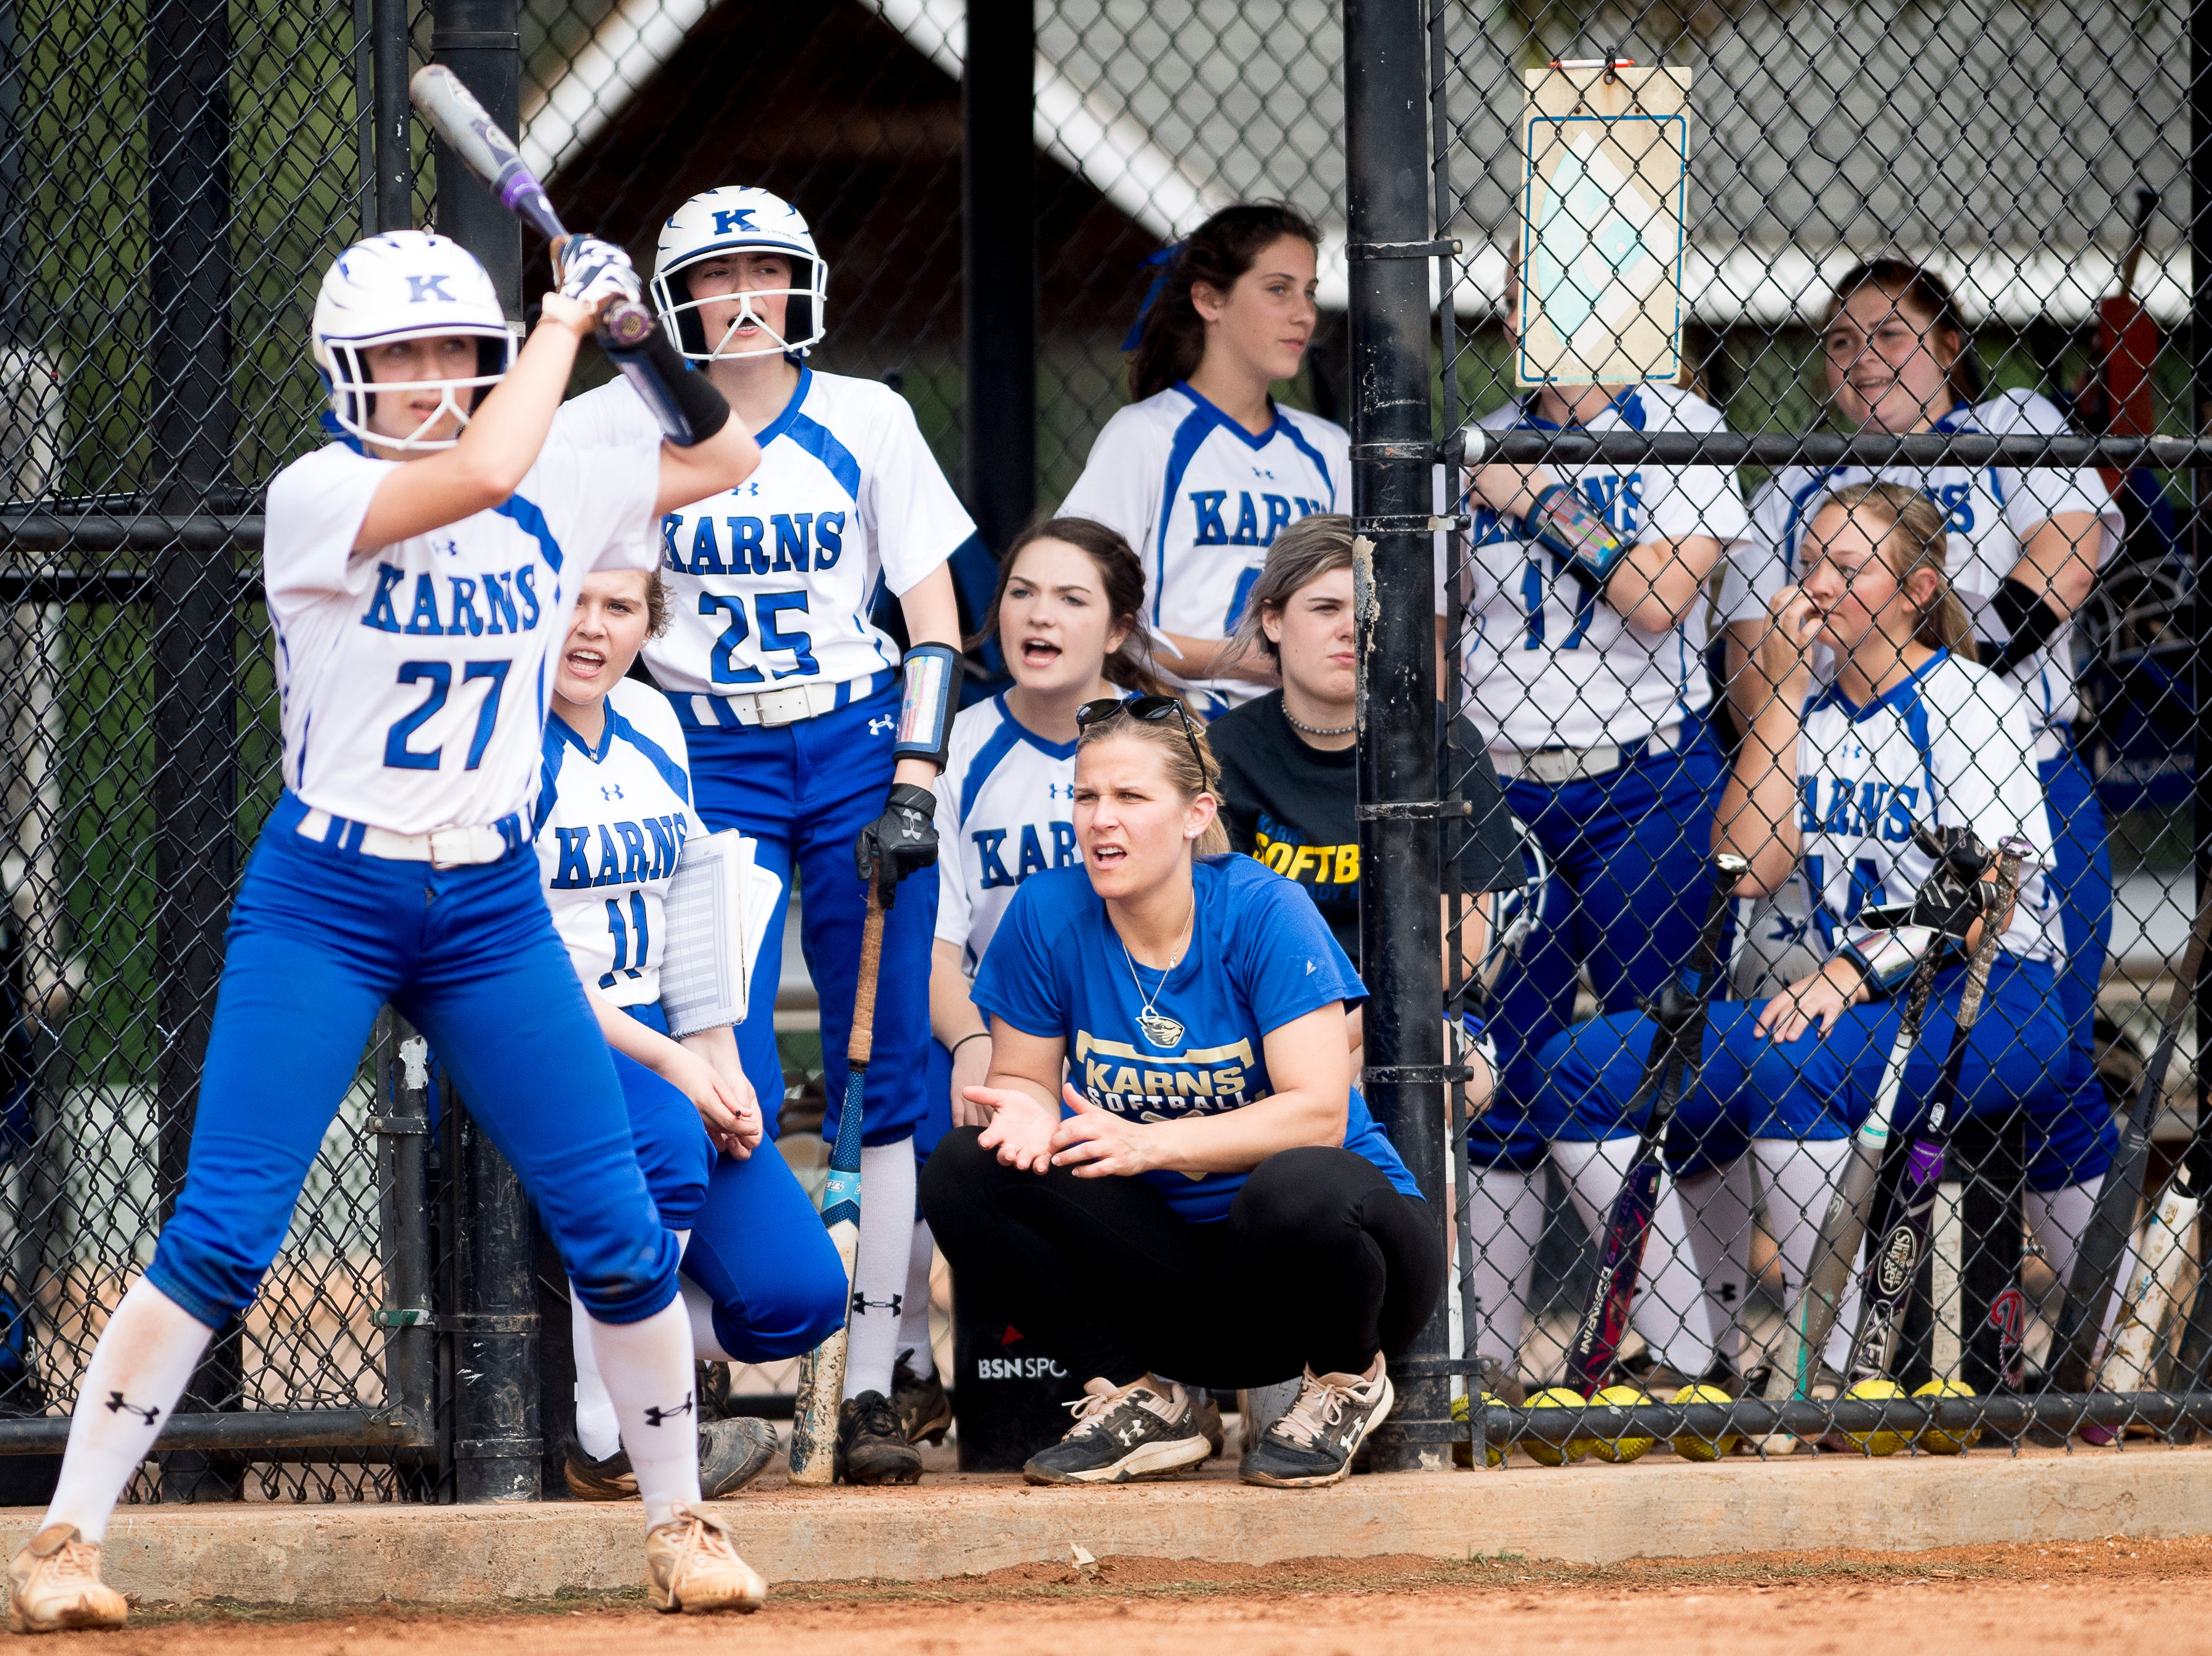 Karns cheers from the dugout during a softball game between Catholic and Karns at Caswell Park in Knoxville, Tennessee on Friday, April 12, 2019.